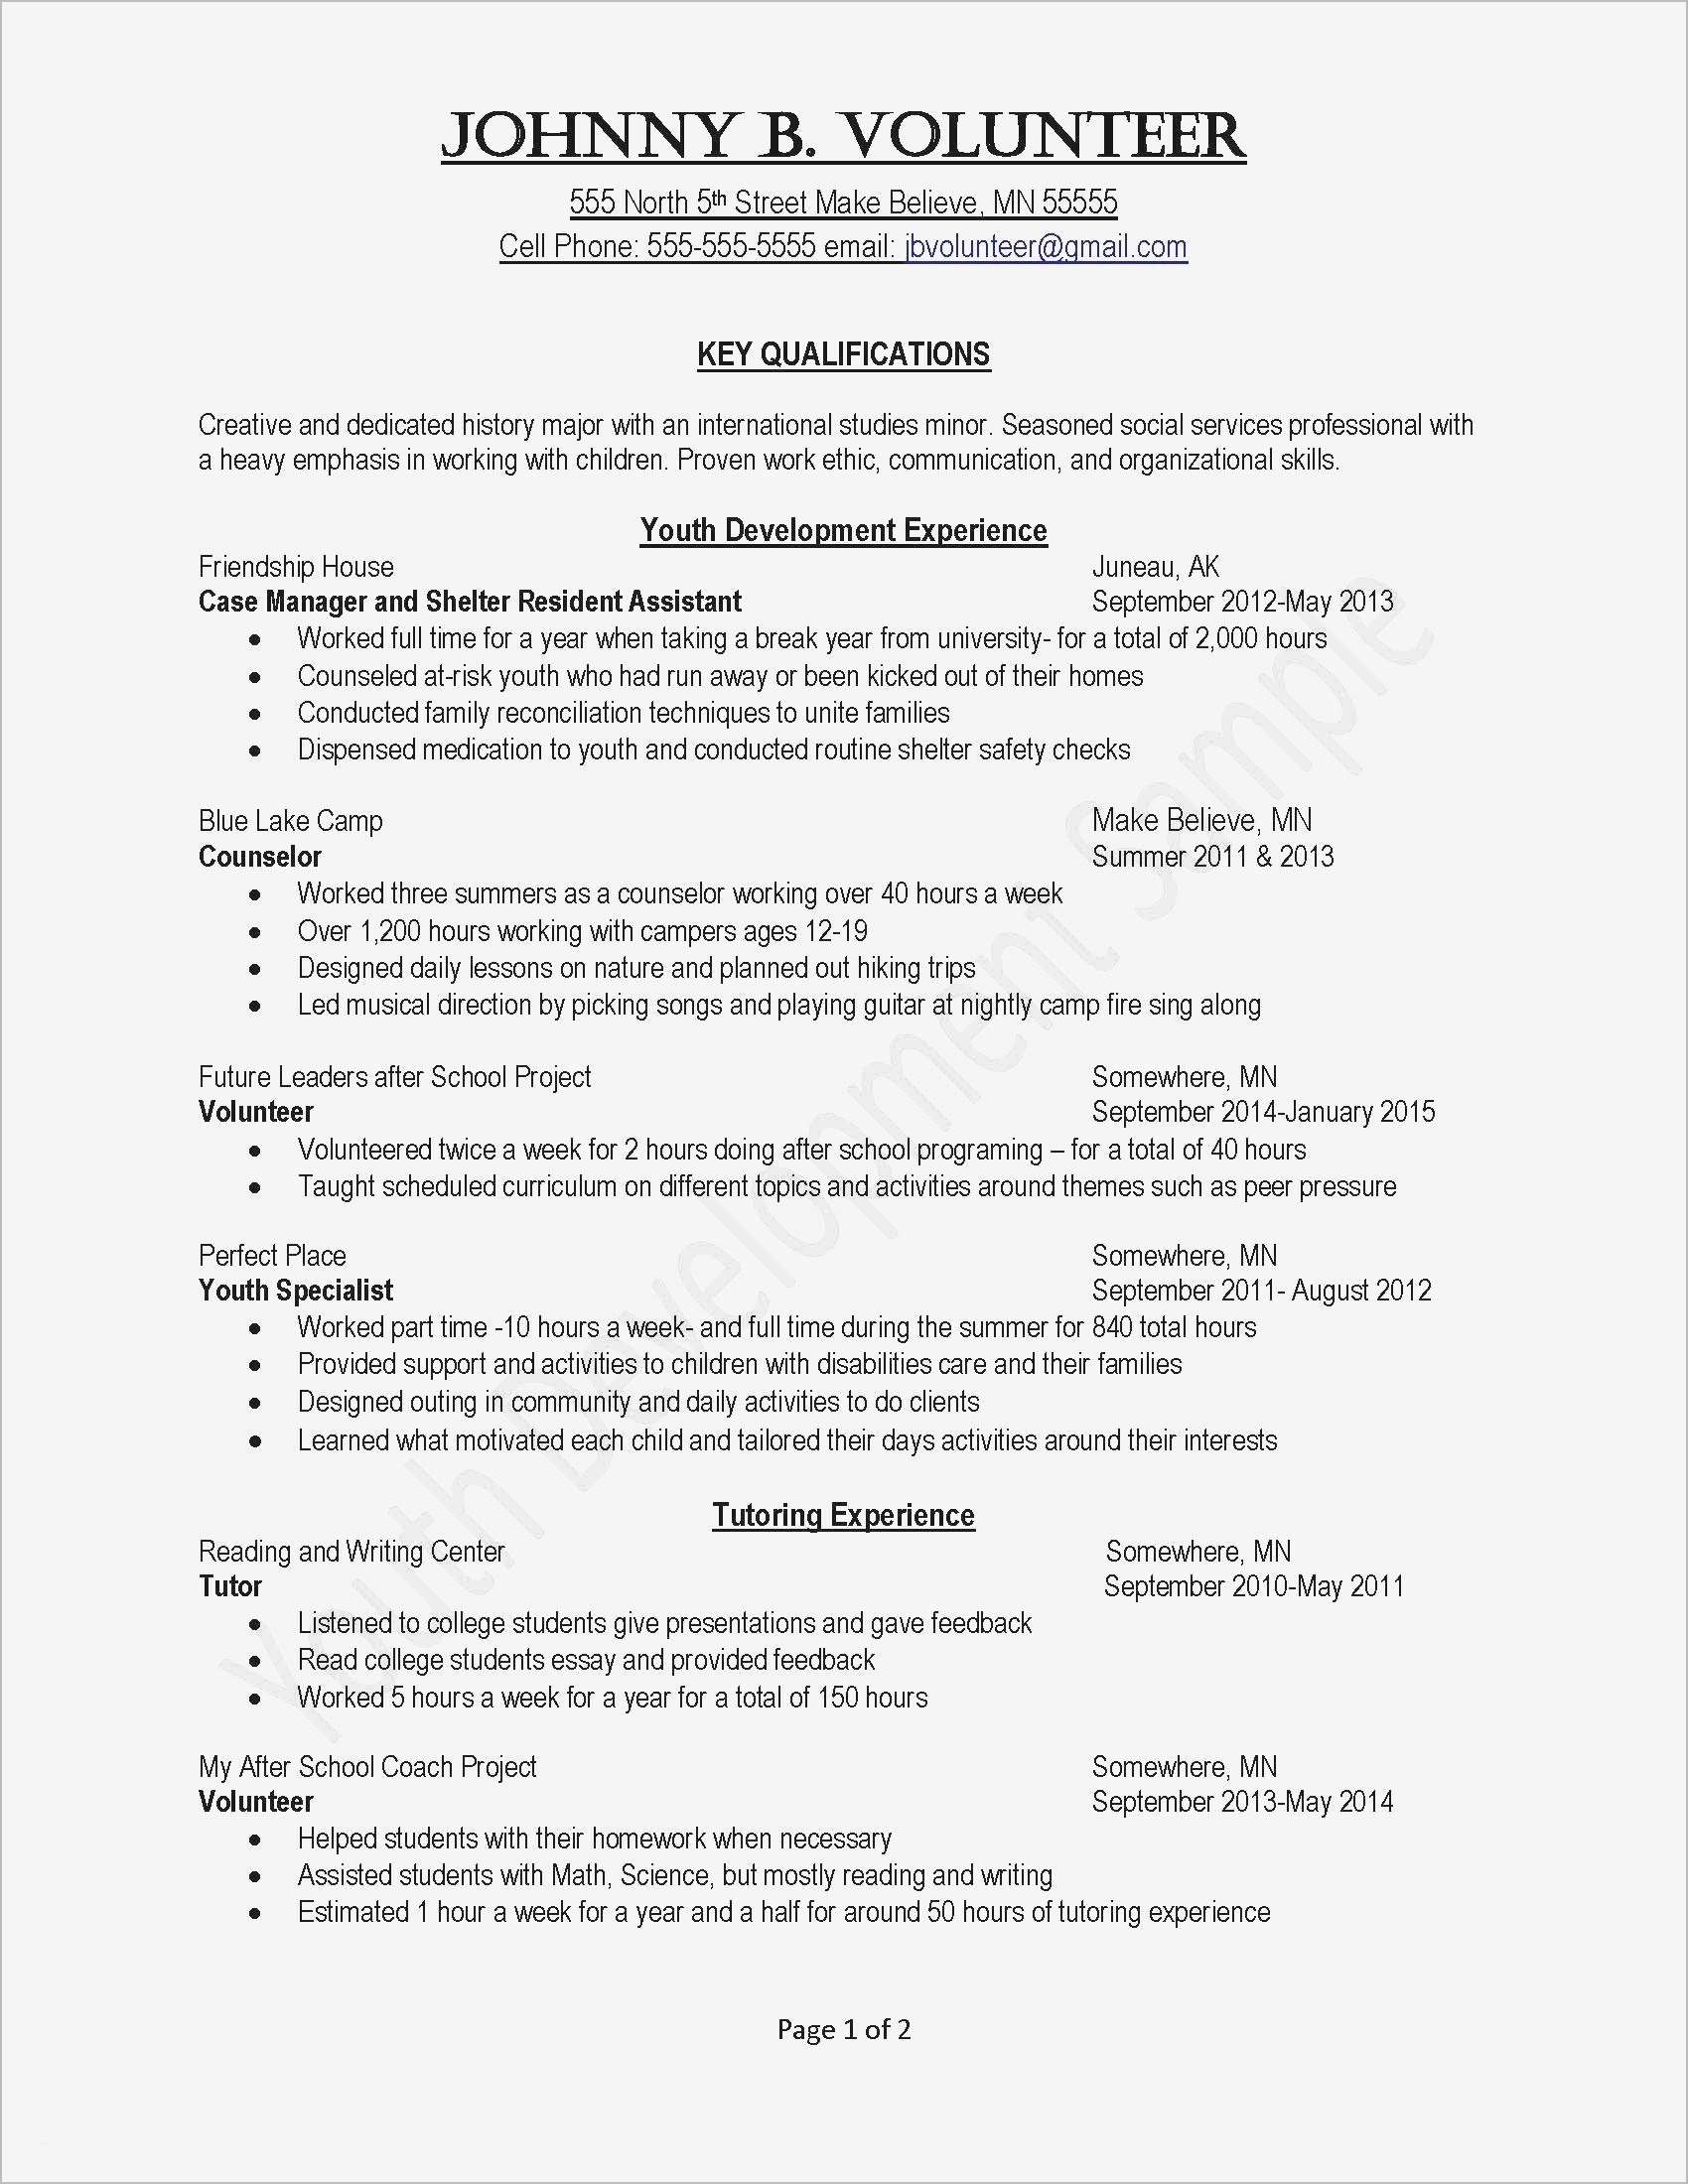 Sales Cover Letter Template - Cover Letter for Sales Job Samples Valid Job Fer Letter Template Us